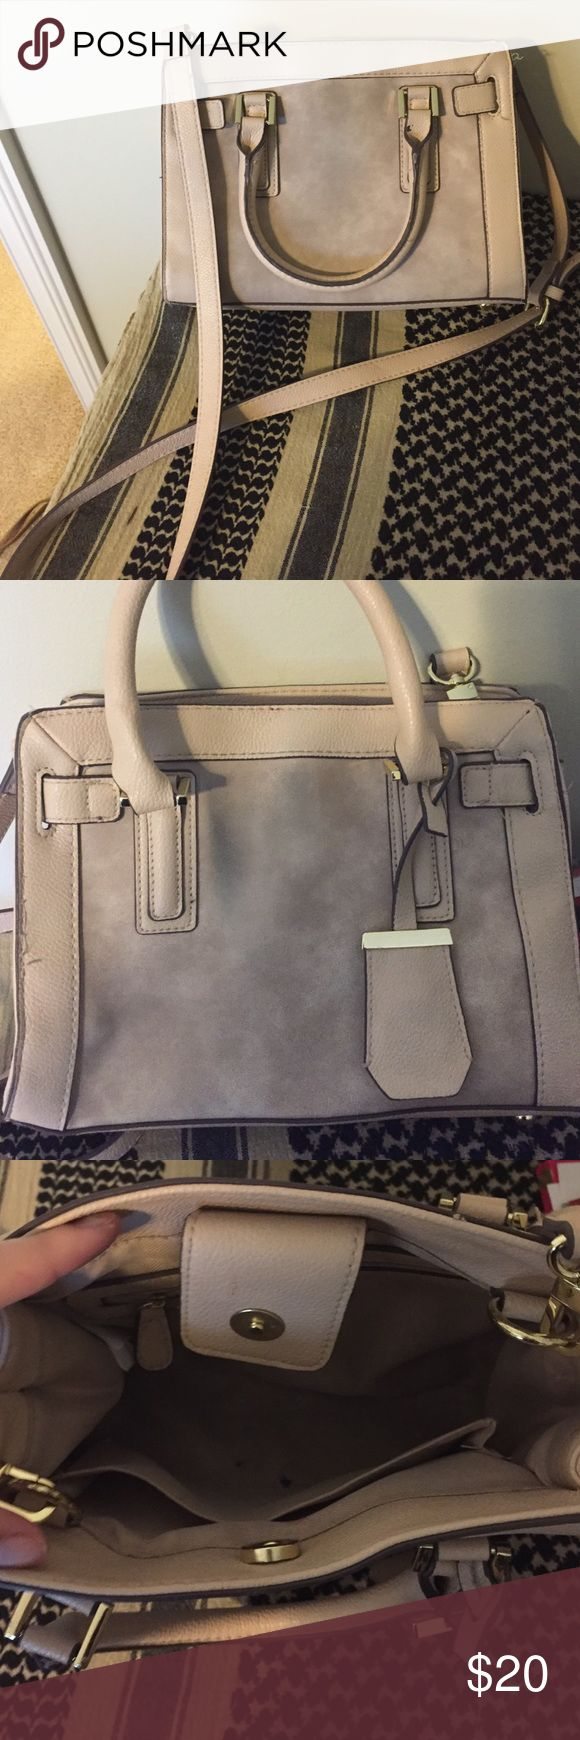 Purse Light pink target purse used twice small transfer spot on the front Merona Bags Crossbody Bags